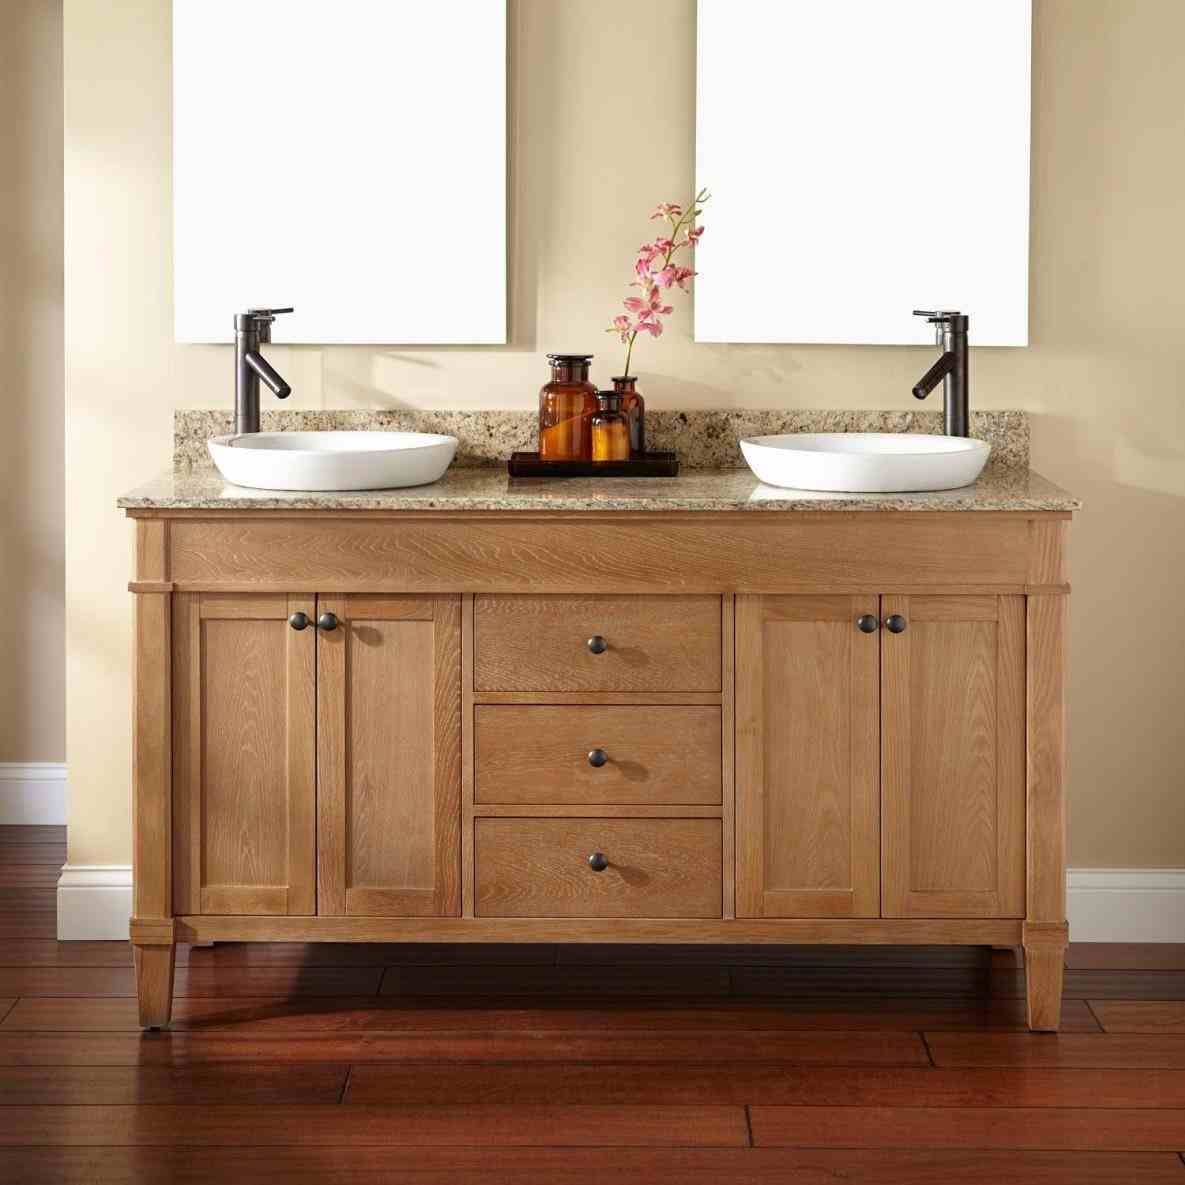 rustic double sink bathroom vanities. New Post Rustic Double Sink Bathroom Vanity Visit Bobayule Trending Decors Vanities A